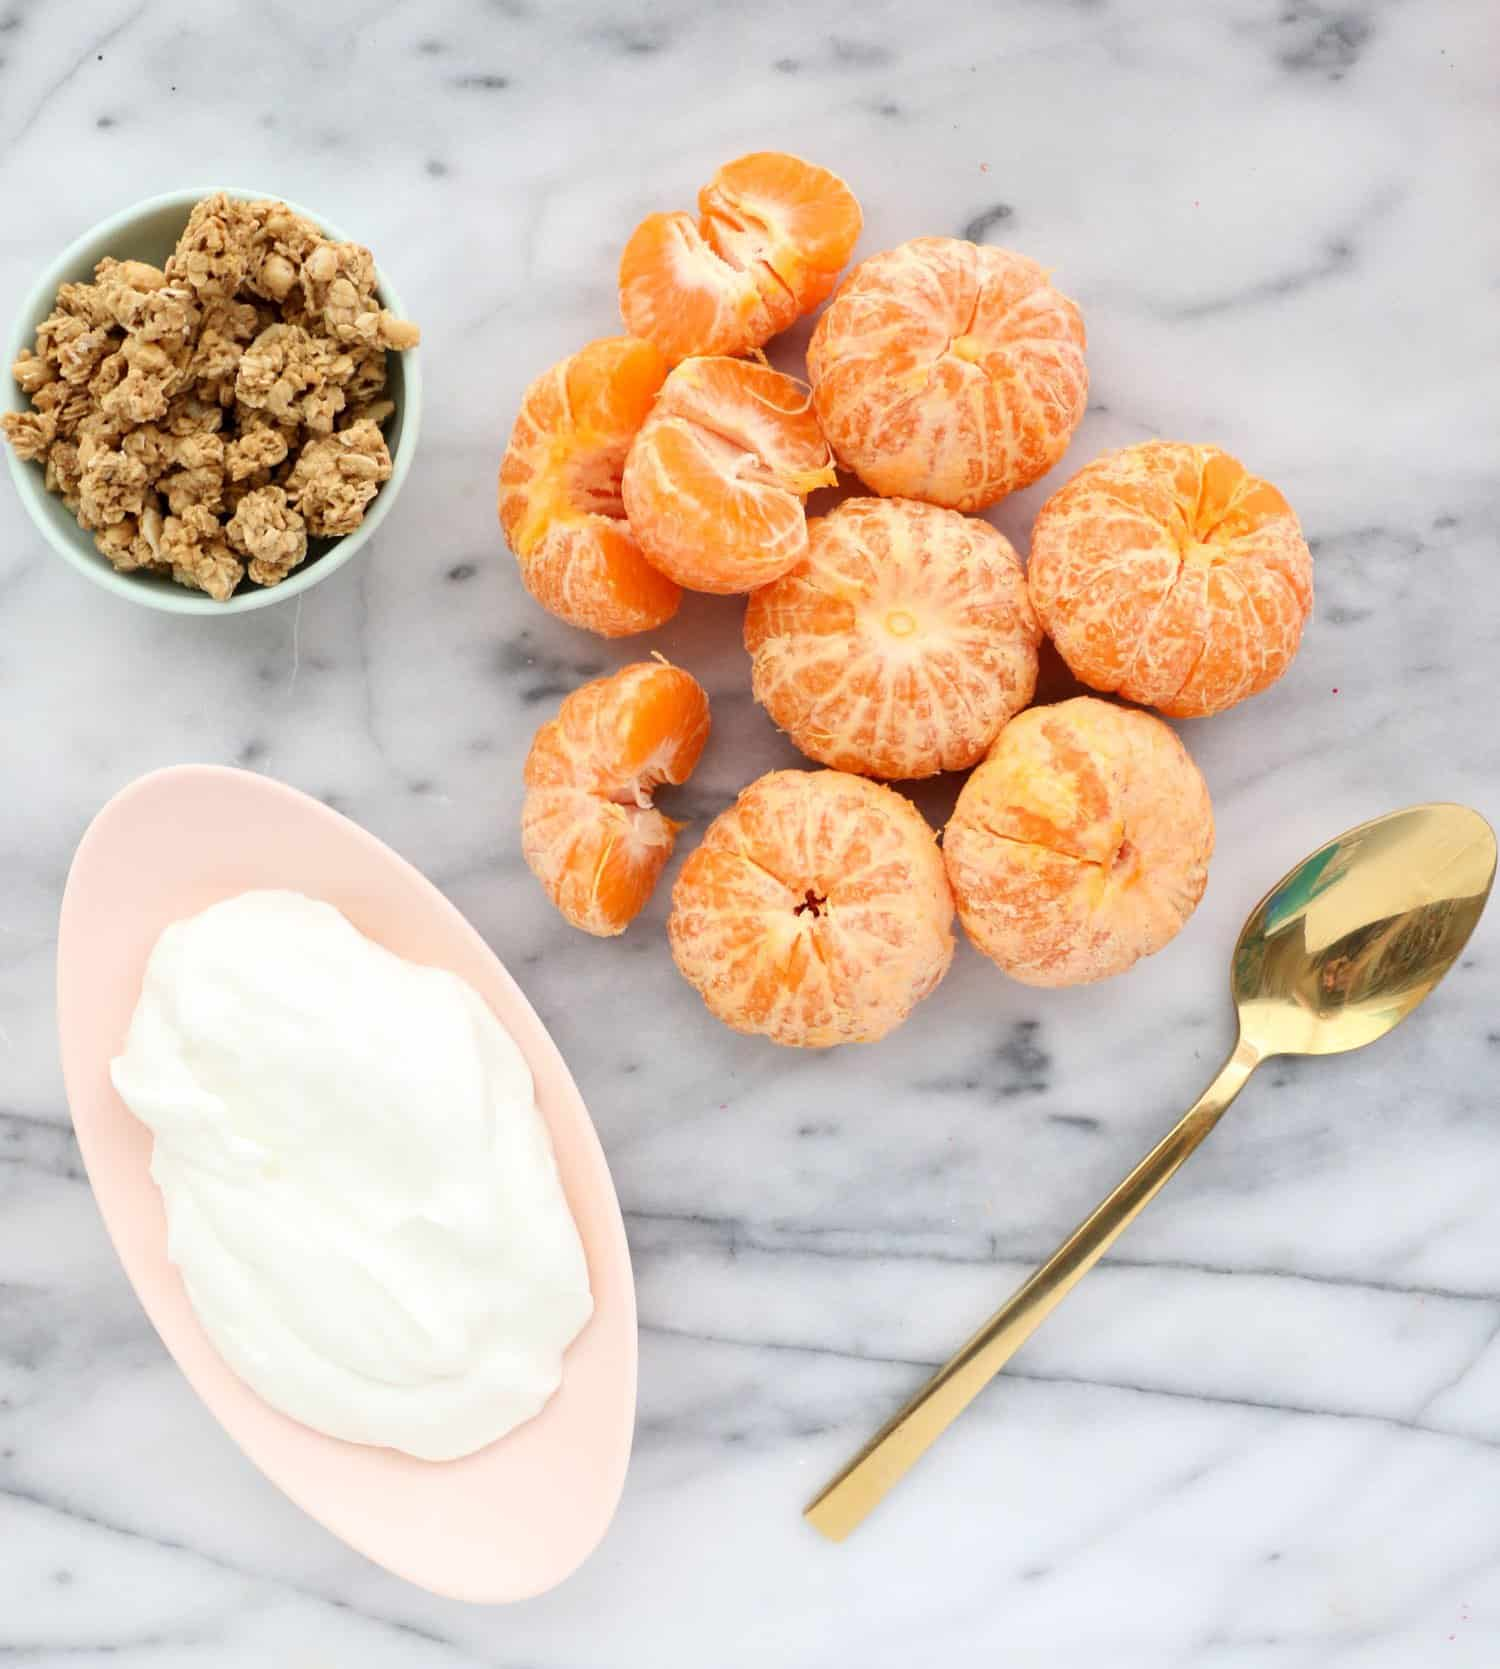 Make-Your-Own-Healthy-Orange-Cream-Popsciles-5